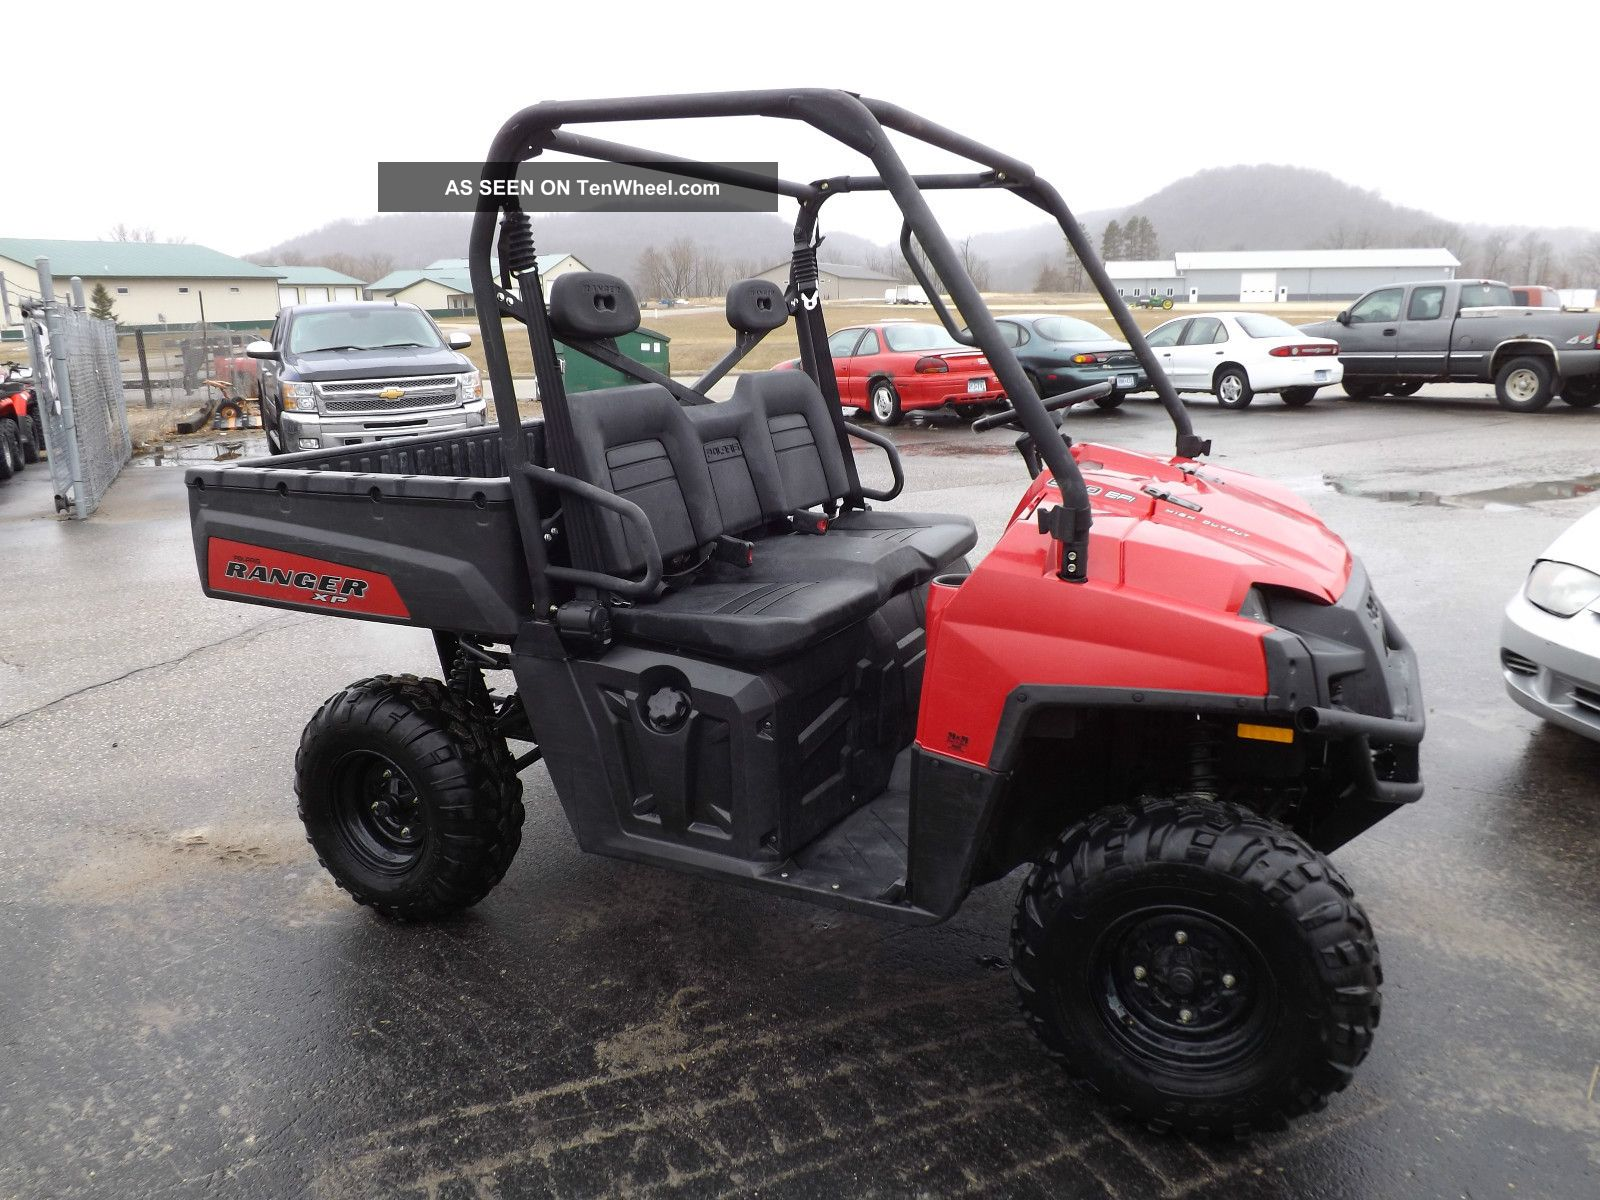 2012 polaris ranger 800 efi 4x4 utvs photo